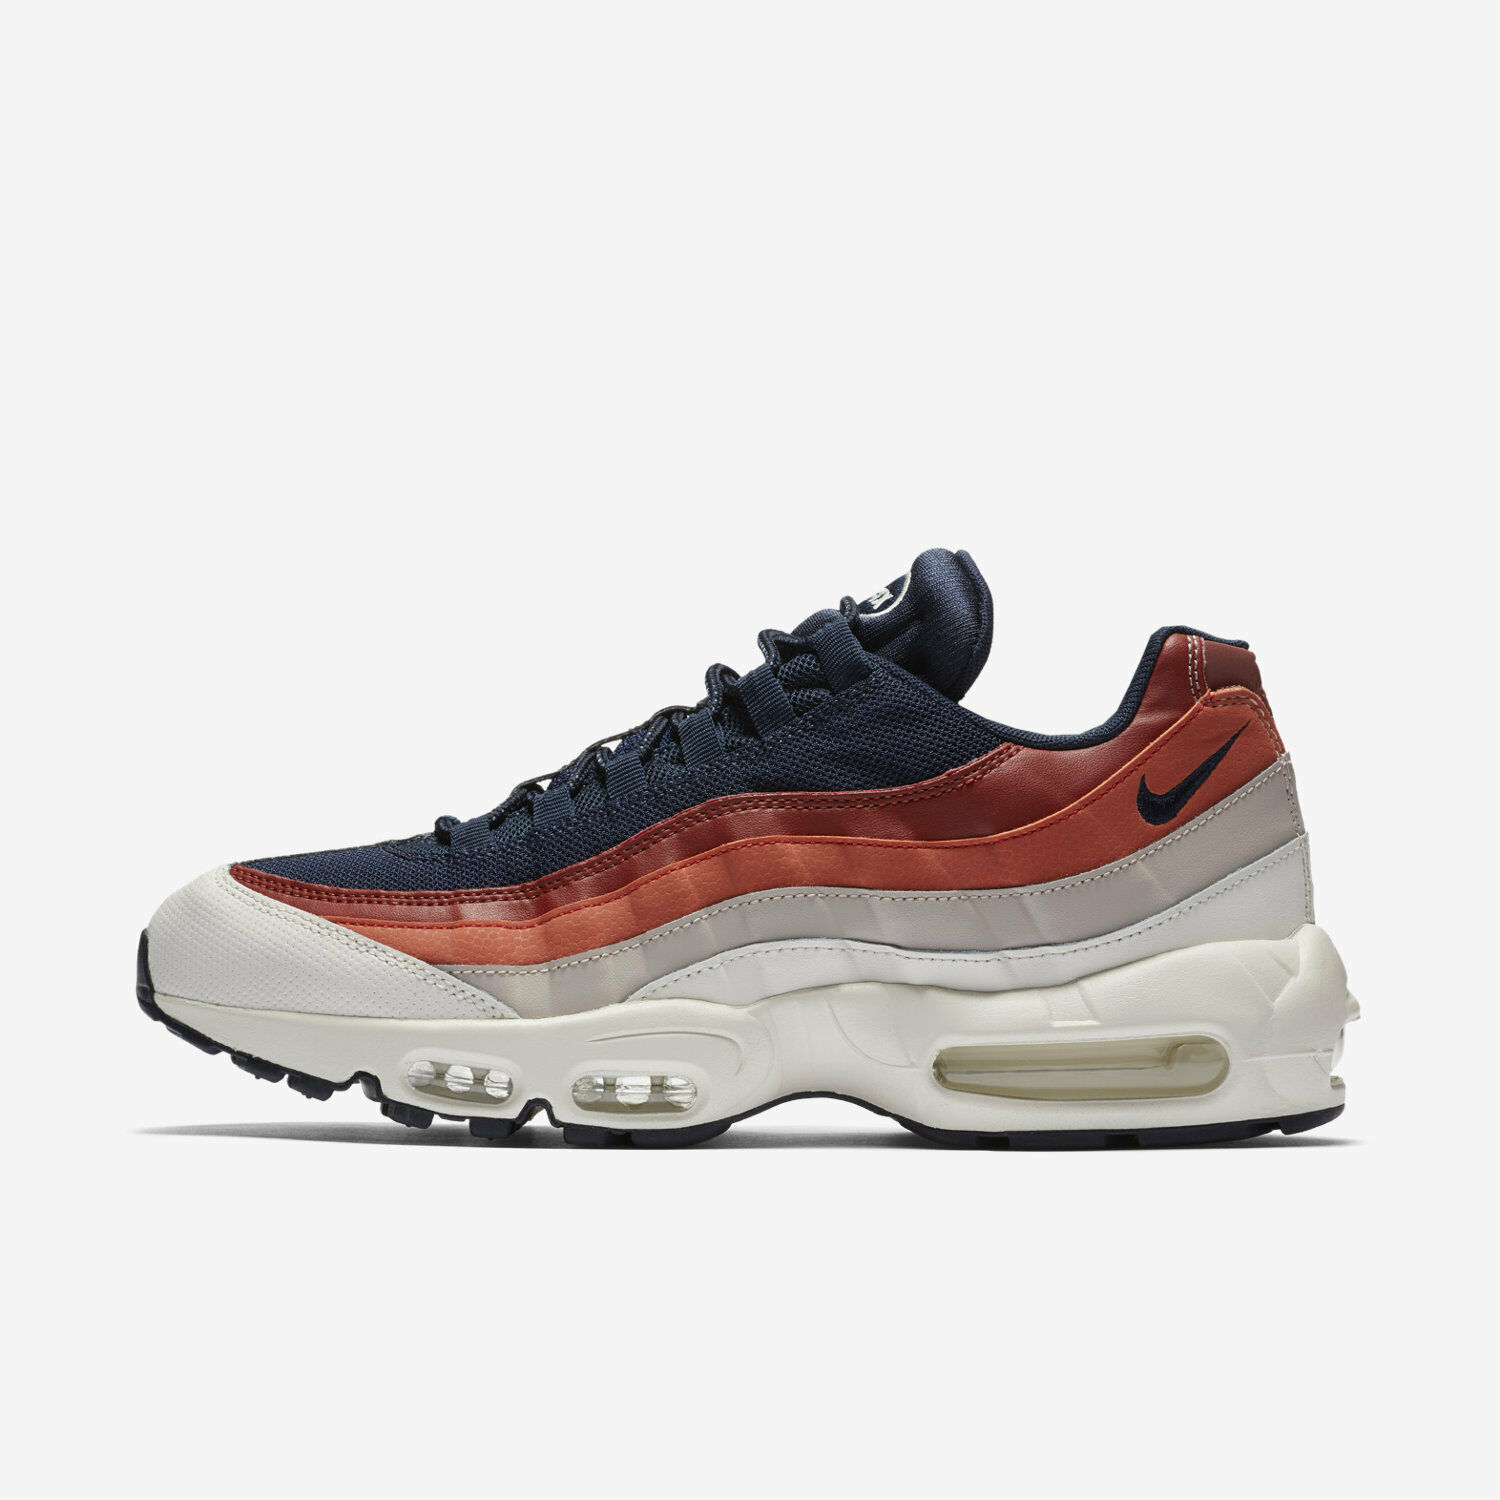 Nike Air Max 95 Premium SE Mens Running Trainer shoes Size 7 7.5 8.5  RRP